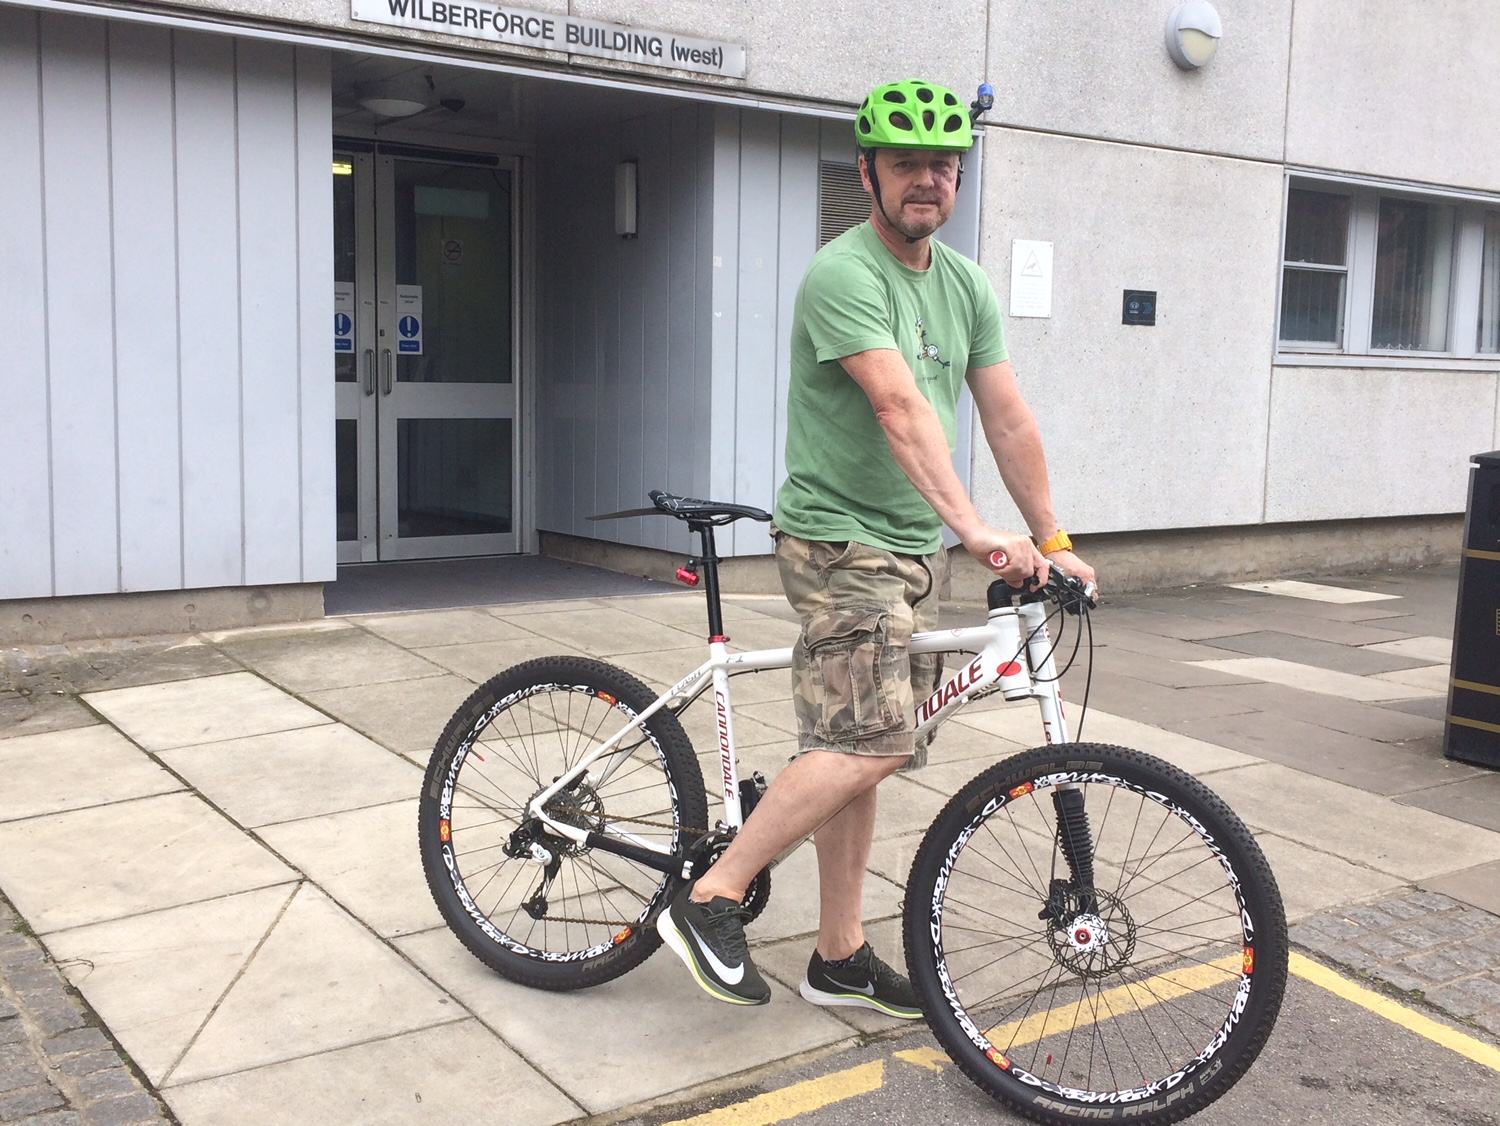 Cyclist hit by car on busy roundabout awarded damages and physiotherapy support for injury